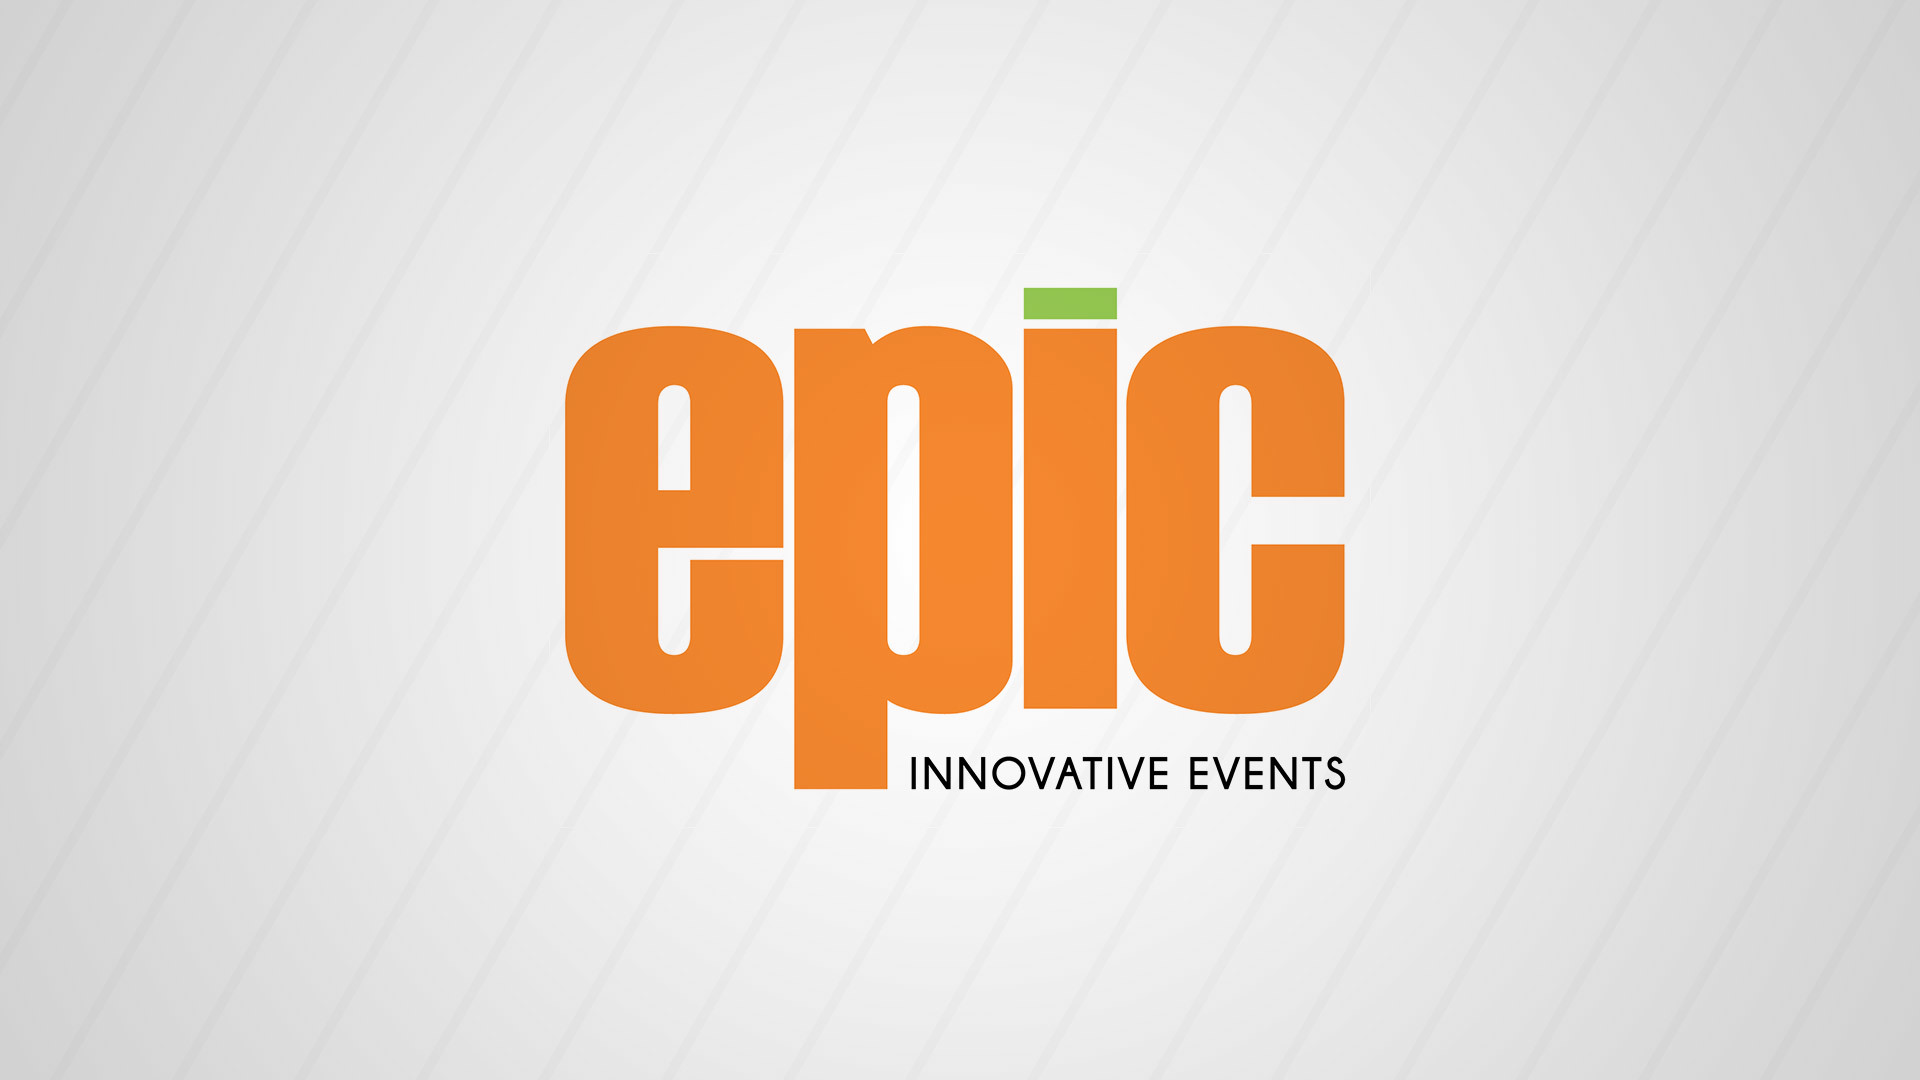 Epic Innovative Events